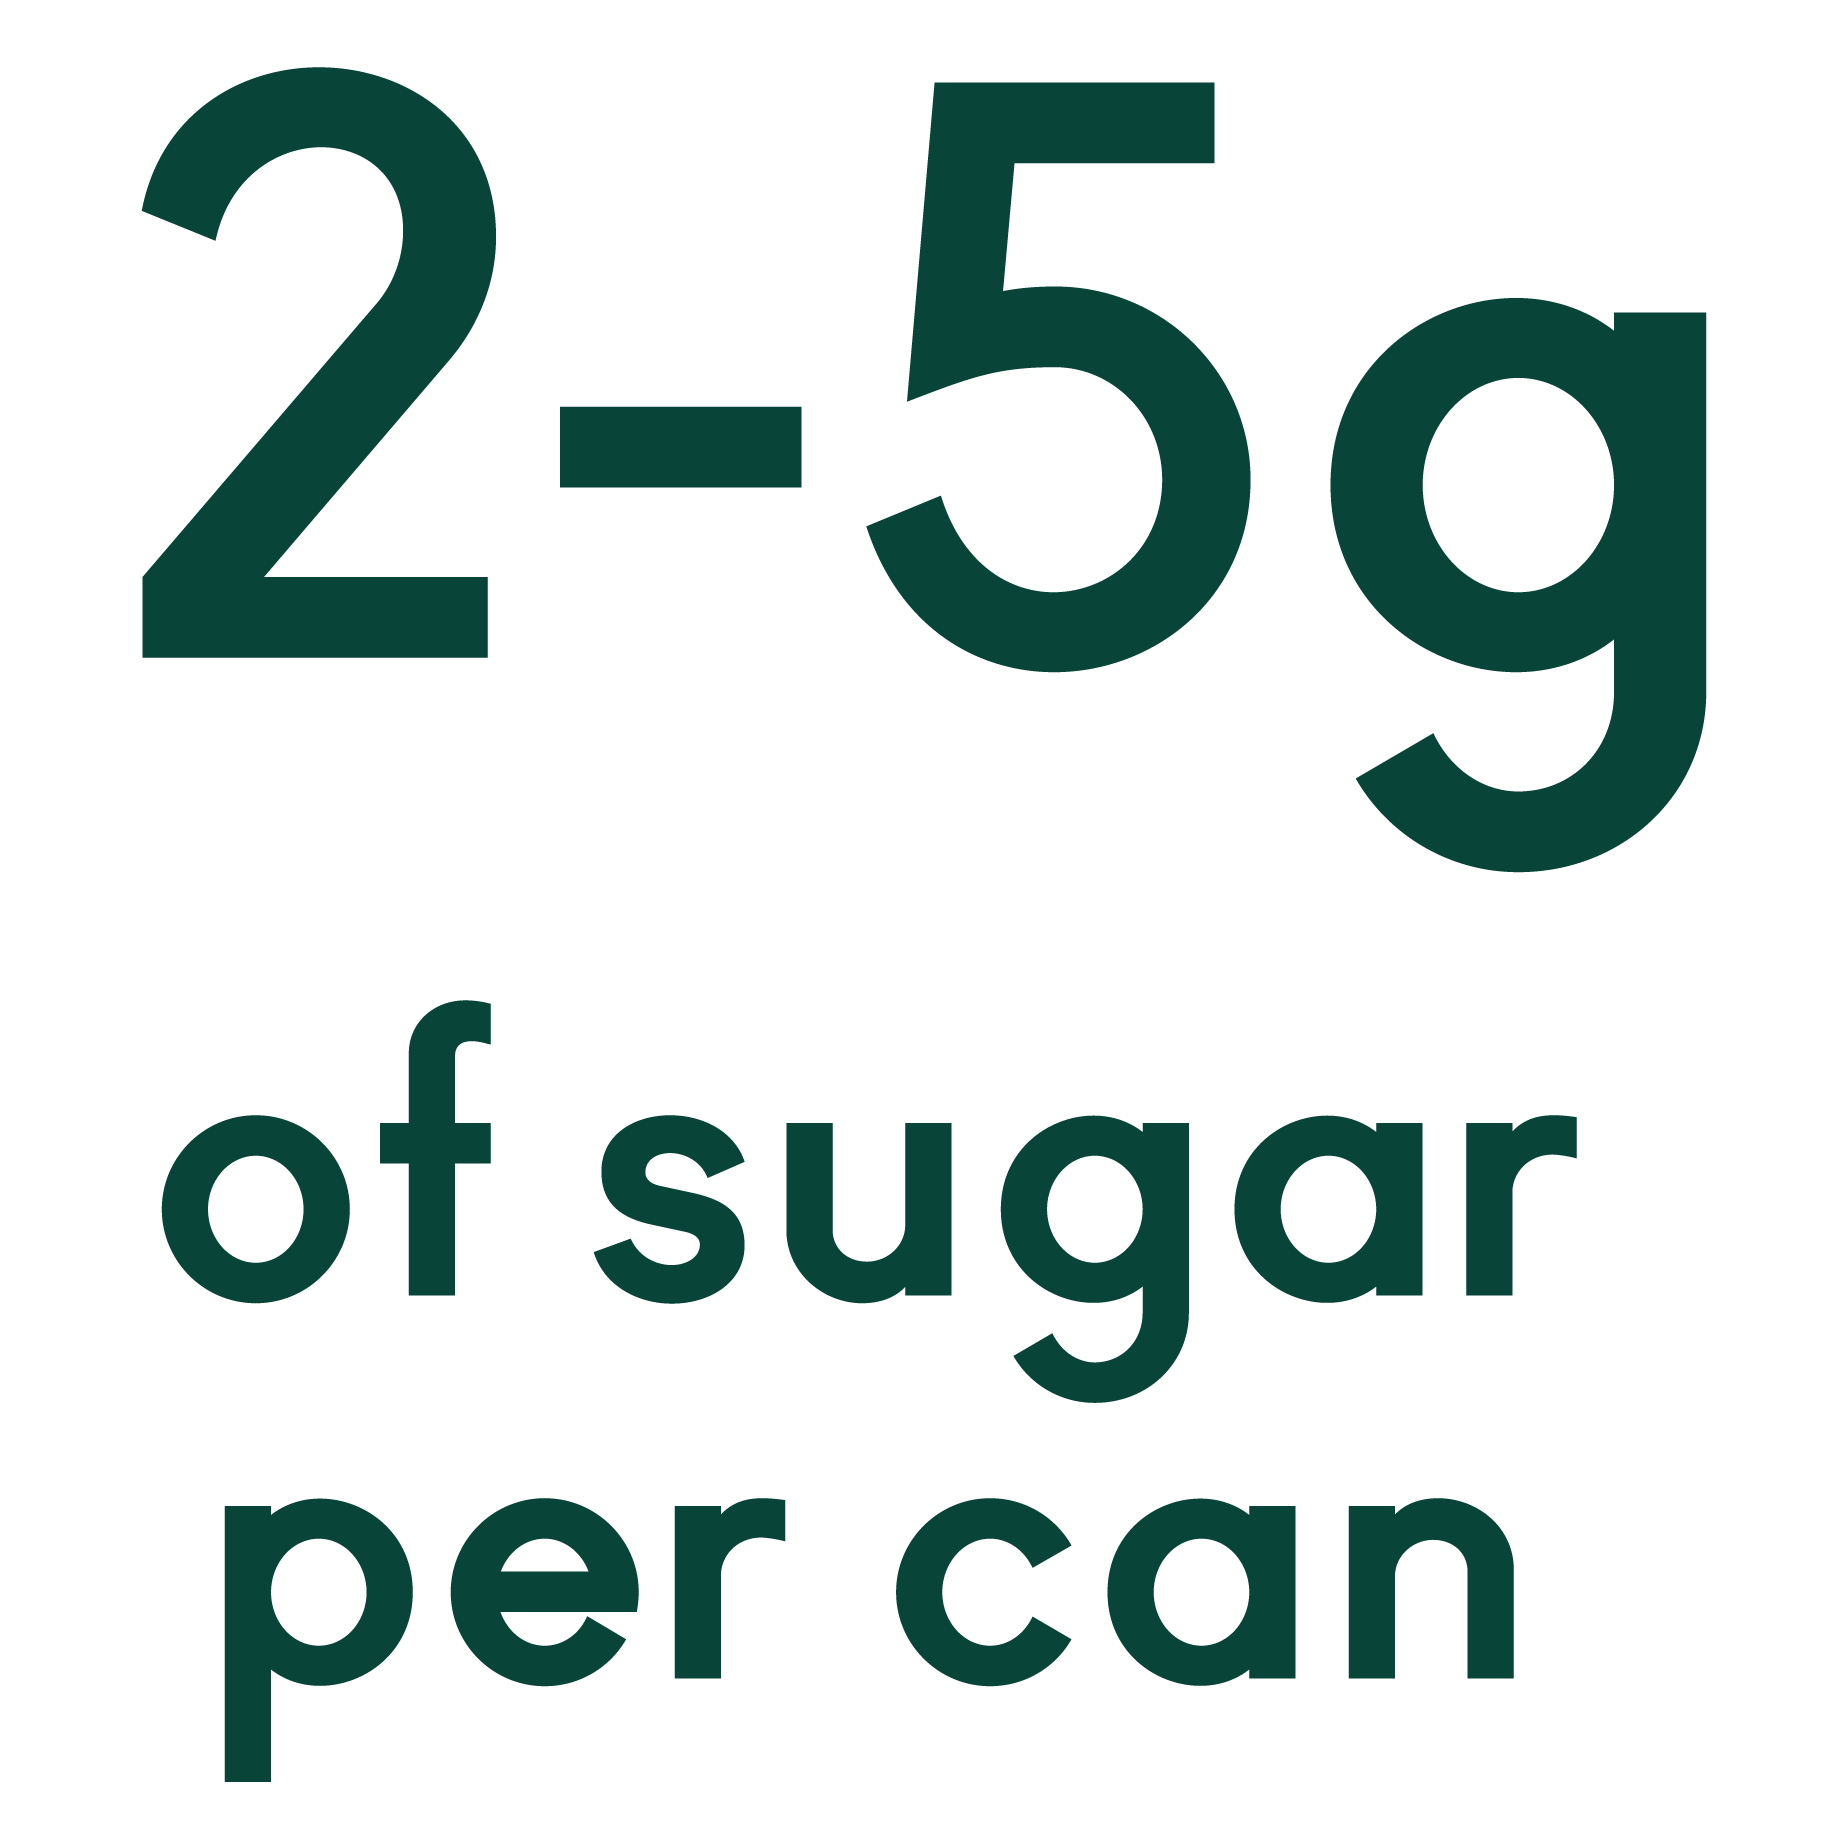 2-5 grams of sugar per can